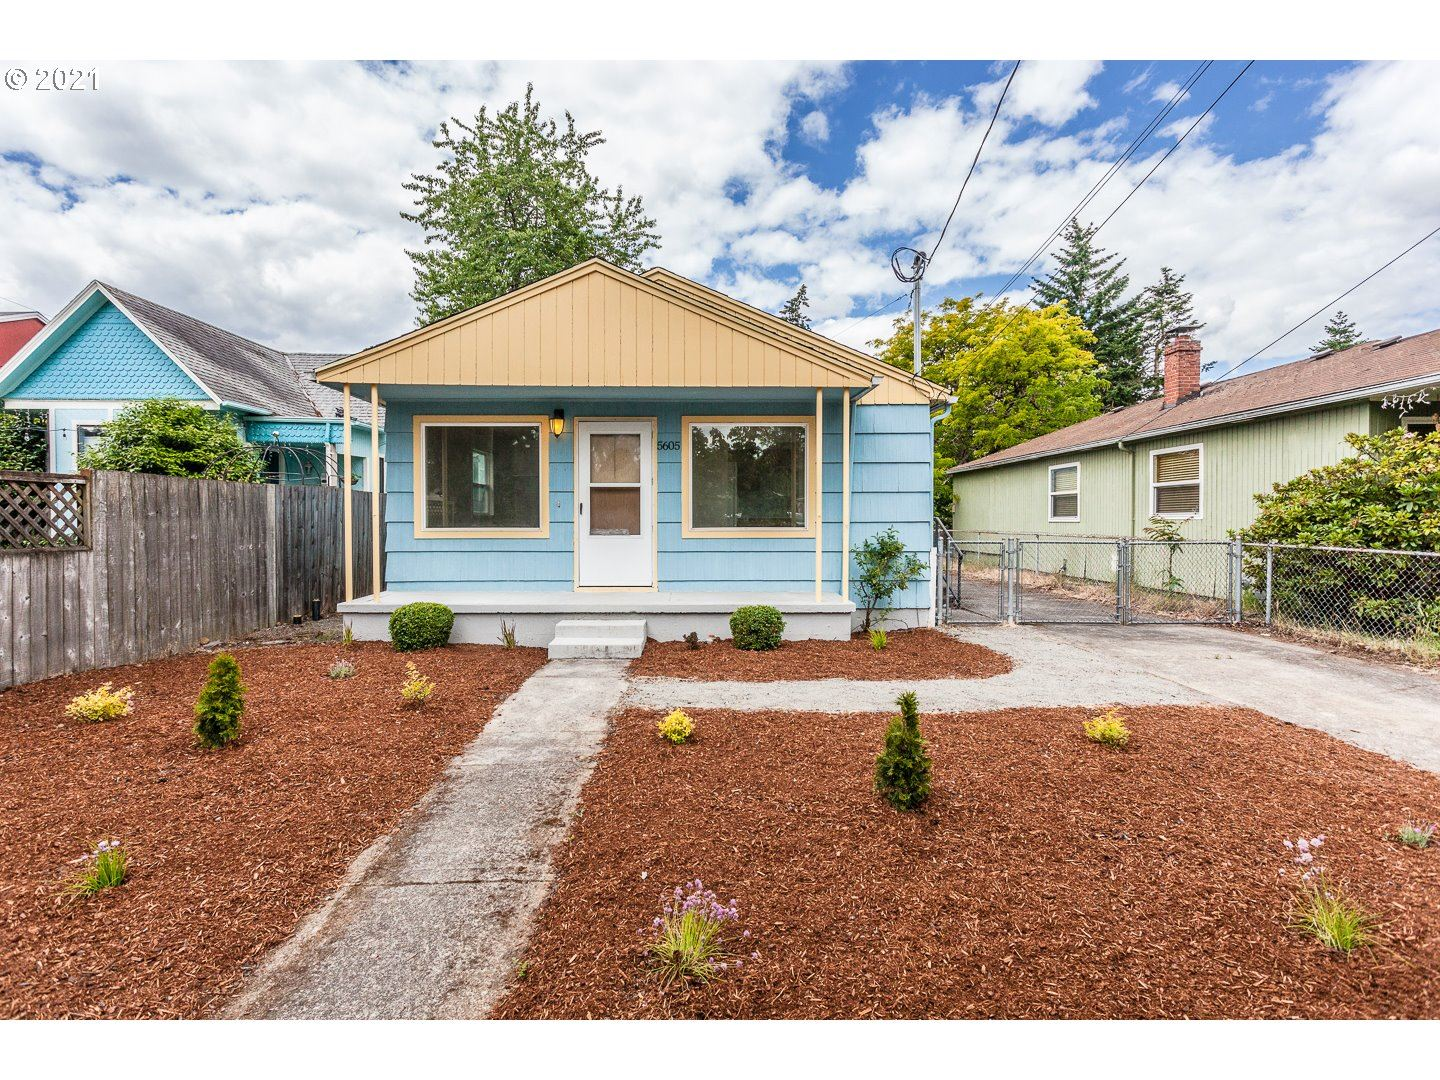 5605 SE 65TH AVE, Portland, OR 97206 - MLS#: 21339791